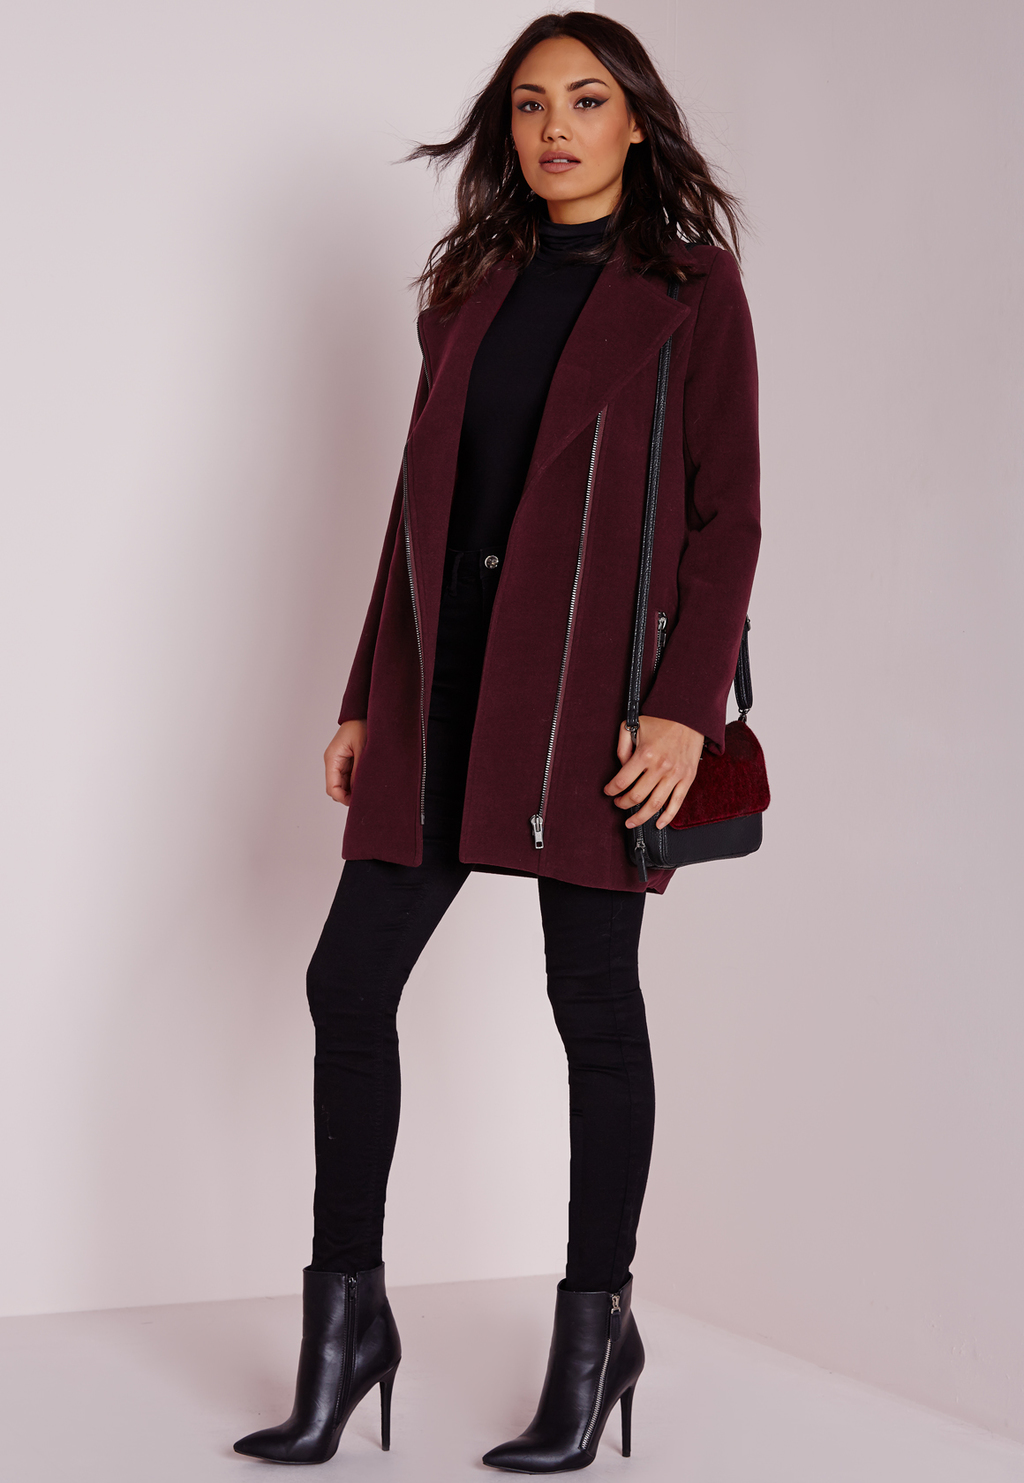 Faux Wool Biker Coat Burgundy, Burgundy - pattern: plain; length: standard; collar: standard biker; predominant colour: burgundy; occasions: casual, creative work; fit: tailored/fitted; fibres: wool - mix; sleeve length: long sleeve; sleeve style: standard; collar break: high/illusion of break when open; pattern type: fabric; texture group: woven bulky/heavy; style: biker; season: s/s 2016; wardrobe: highlight